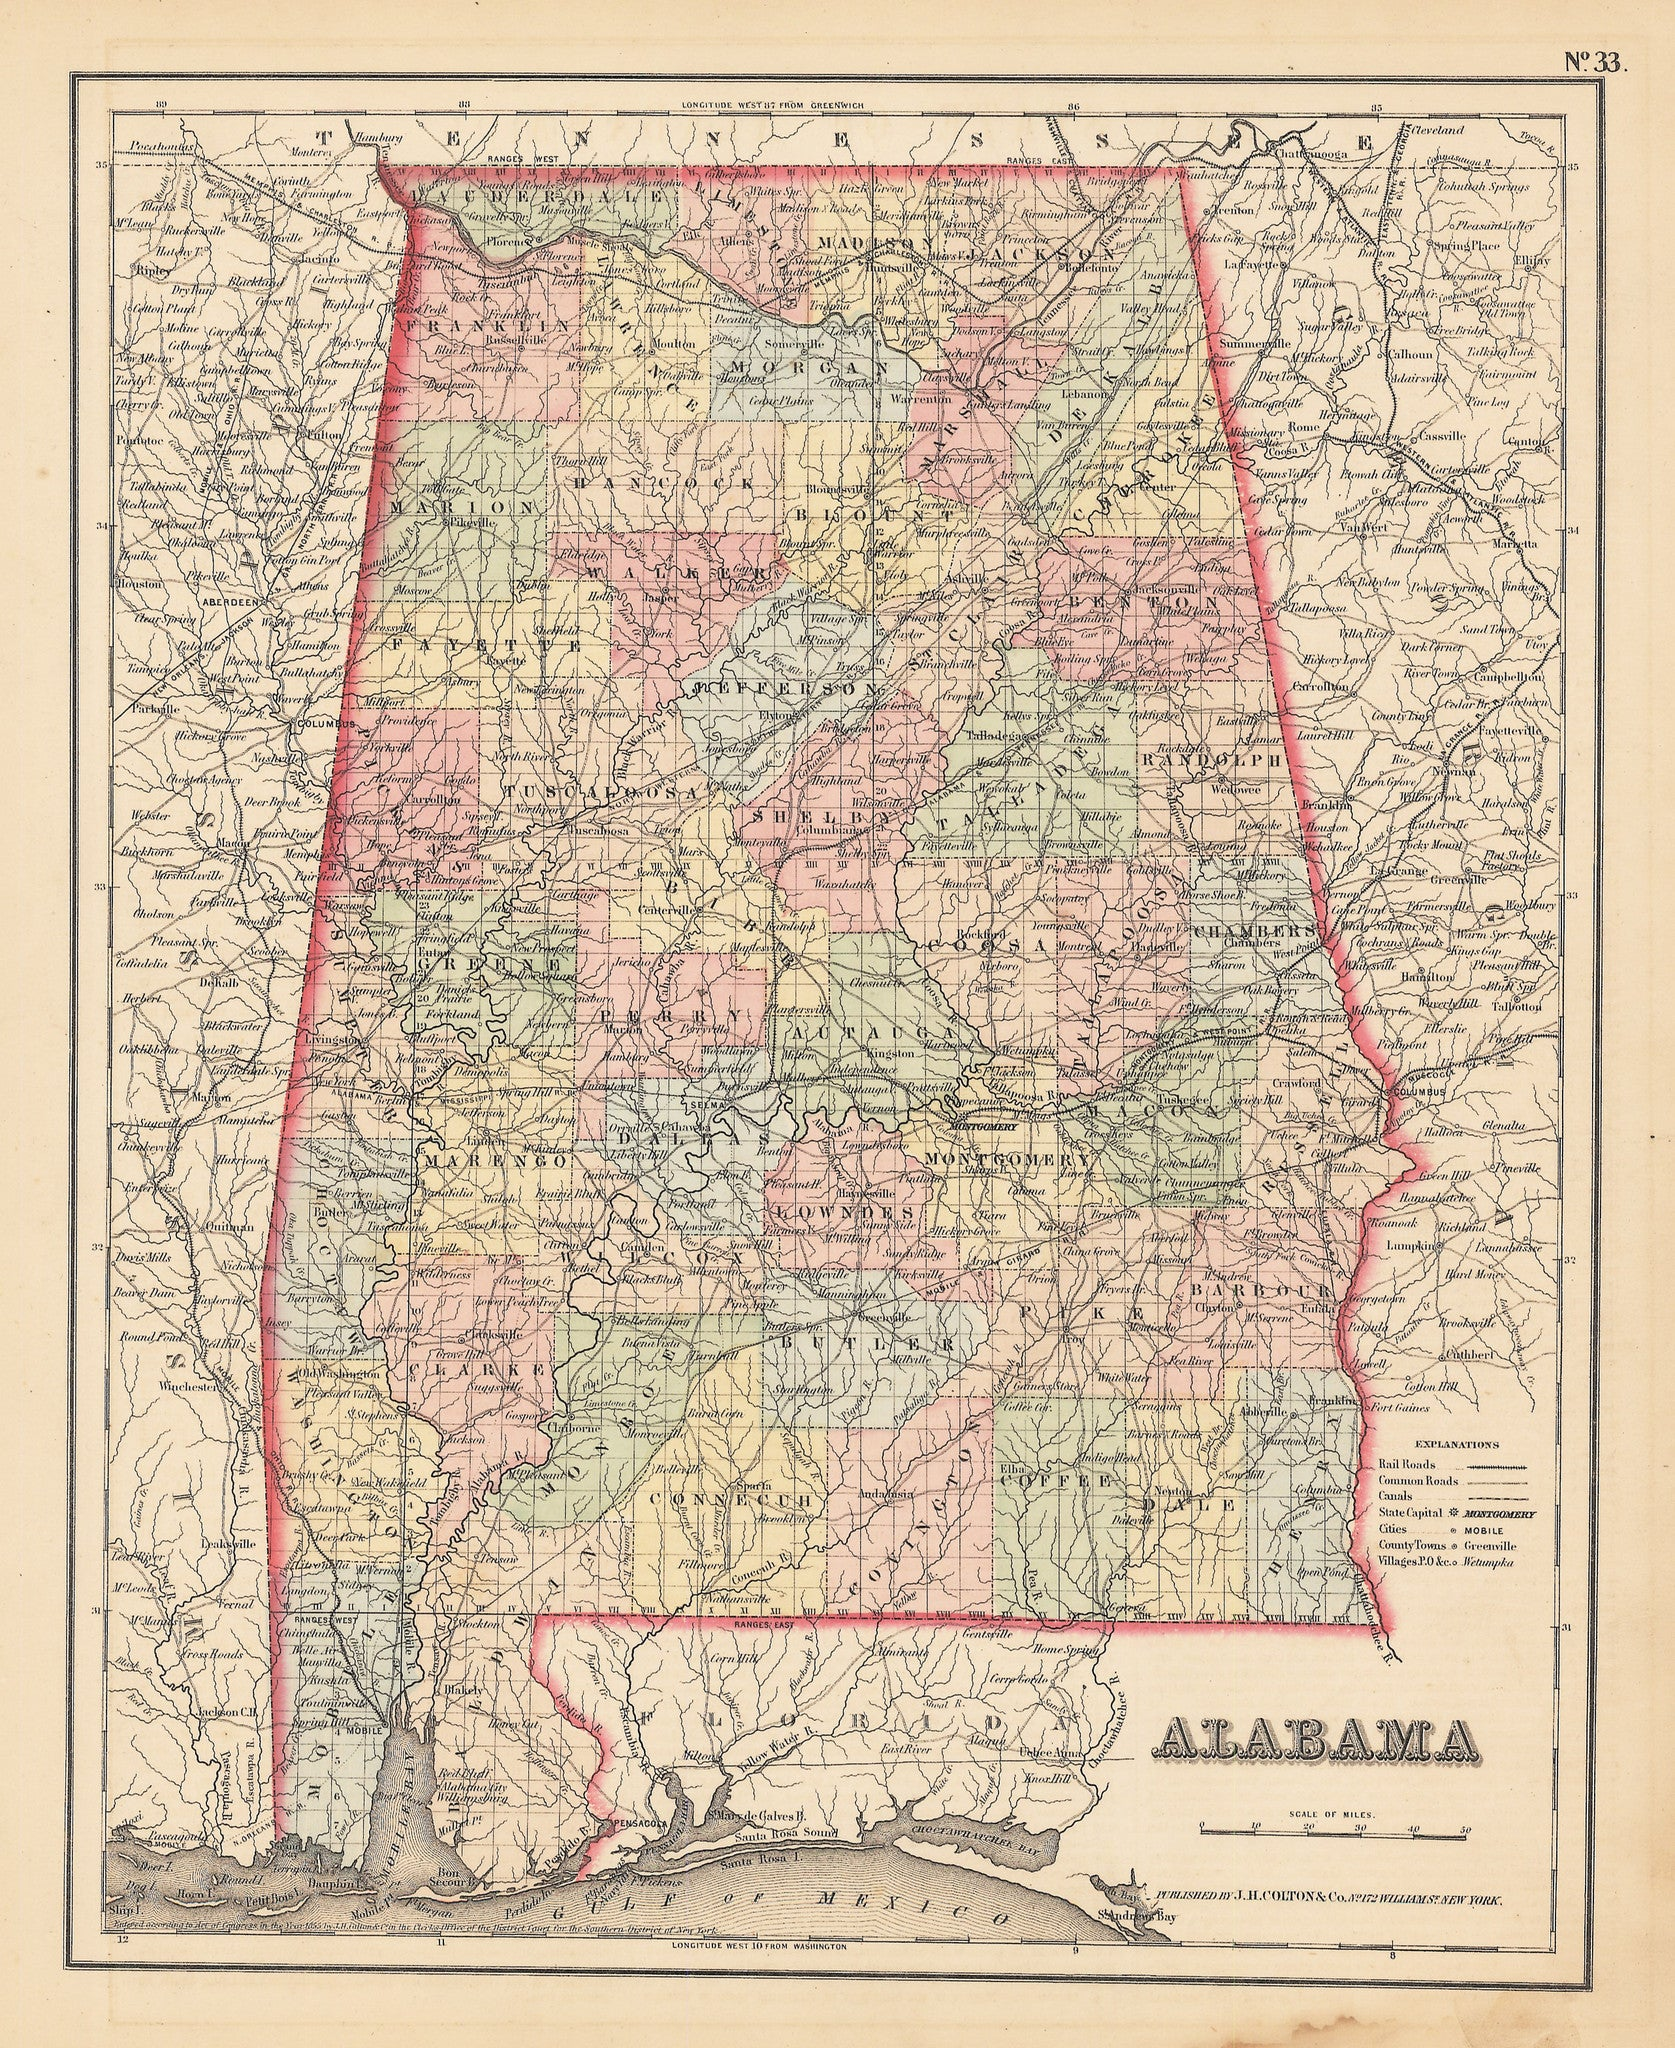 Authentic Antique Map of Alabama: Alabama By: J.H. Colton 1855 (published)